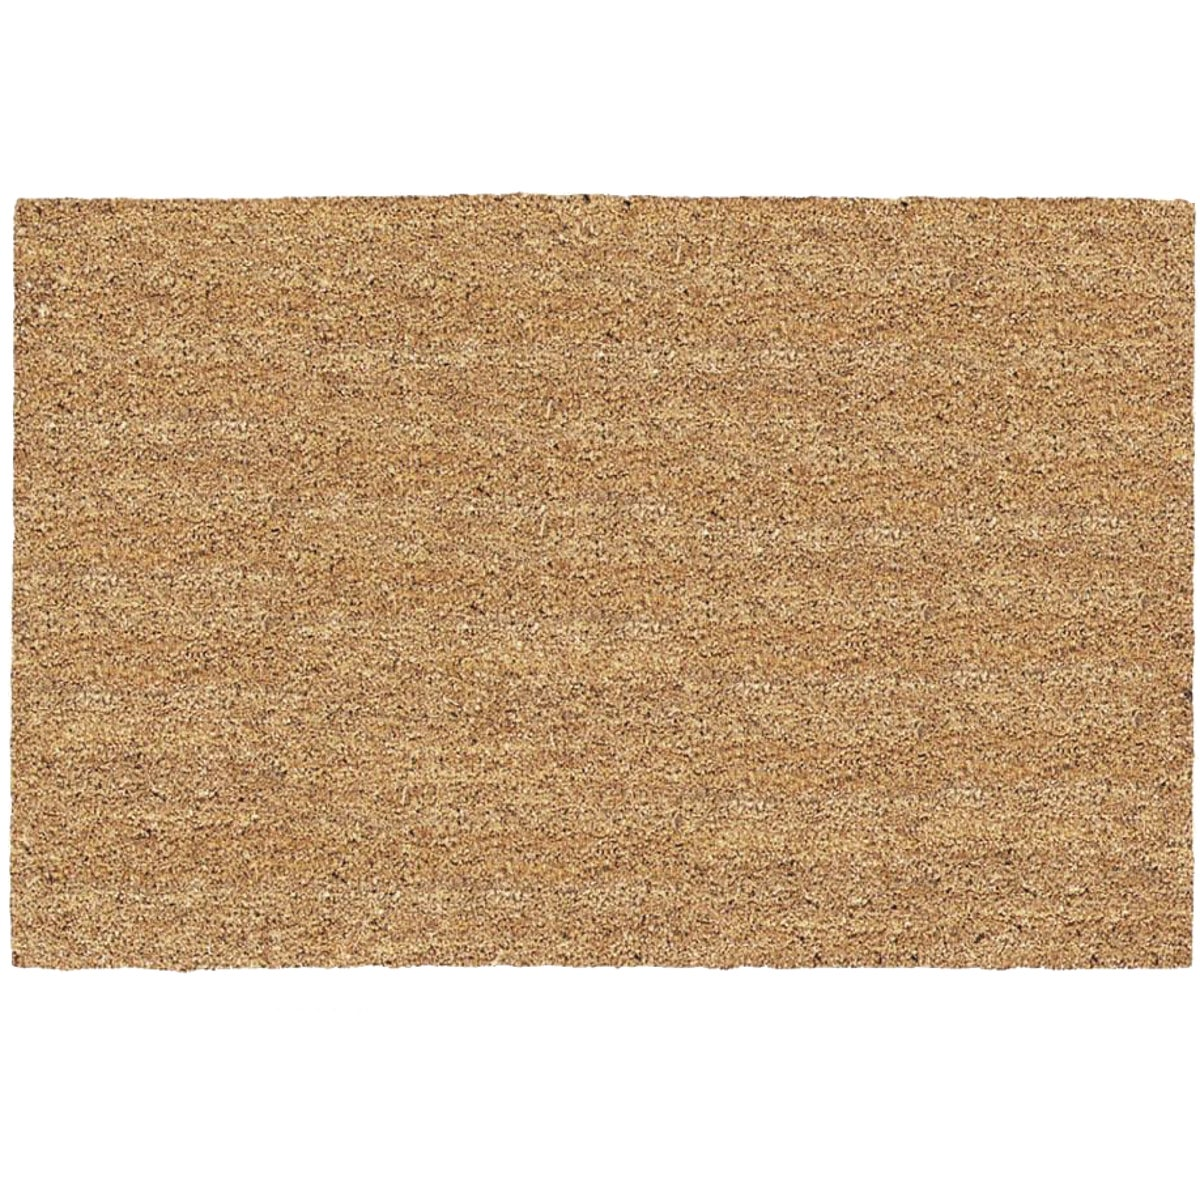 NATURAL TAN DOORMAT - 41561 by Uscoa Llc